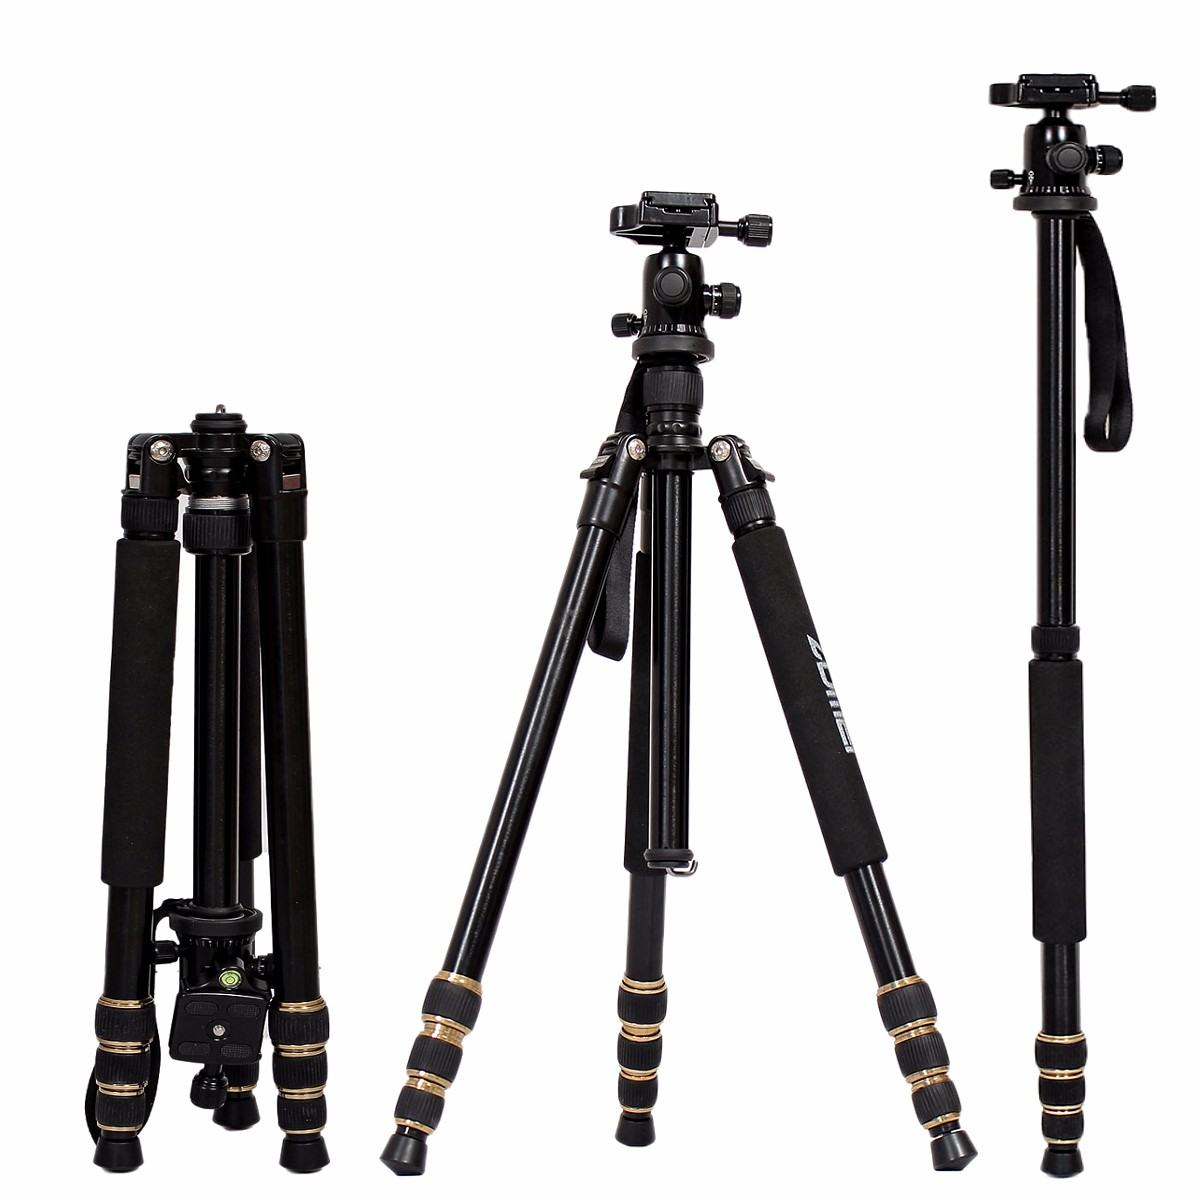 ZOMEI lightweight Portable Q666 Professional Travel Camera Tripod Monopod aluminum Ball Head compact for digital SLR DSLR camera zomei z888 portable professional aluminium alloy travel tripod monopod z818 for slr dslr digital camera five colors available